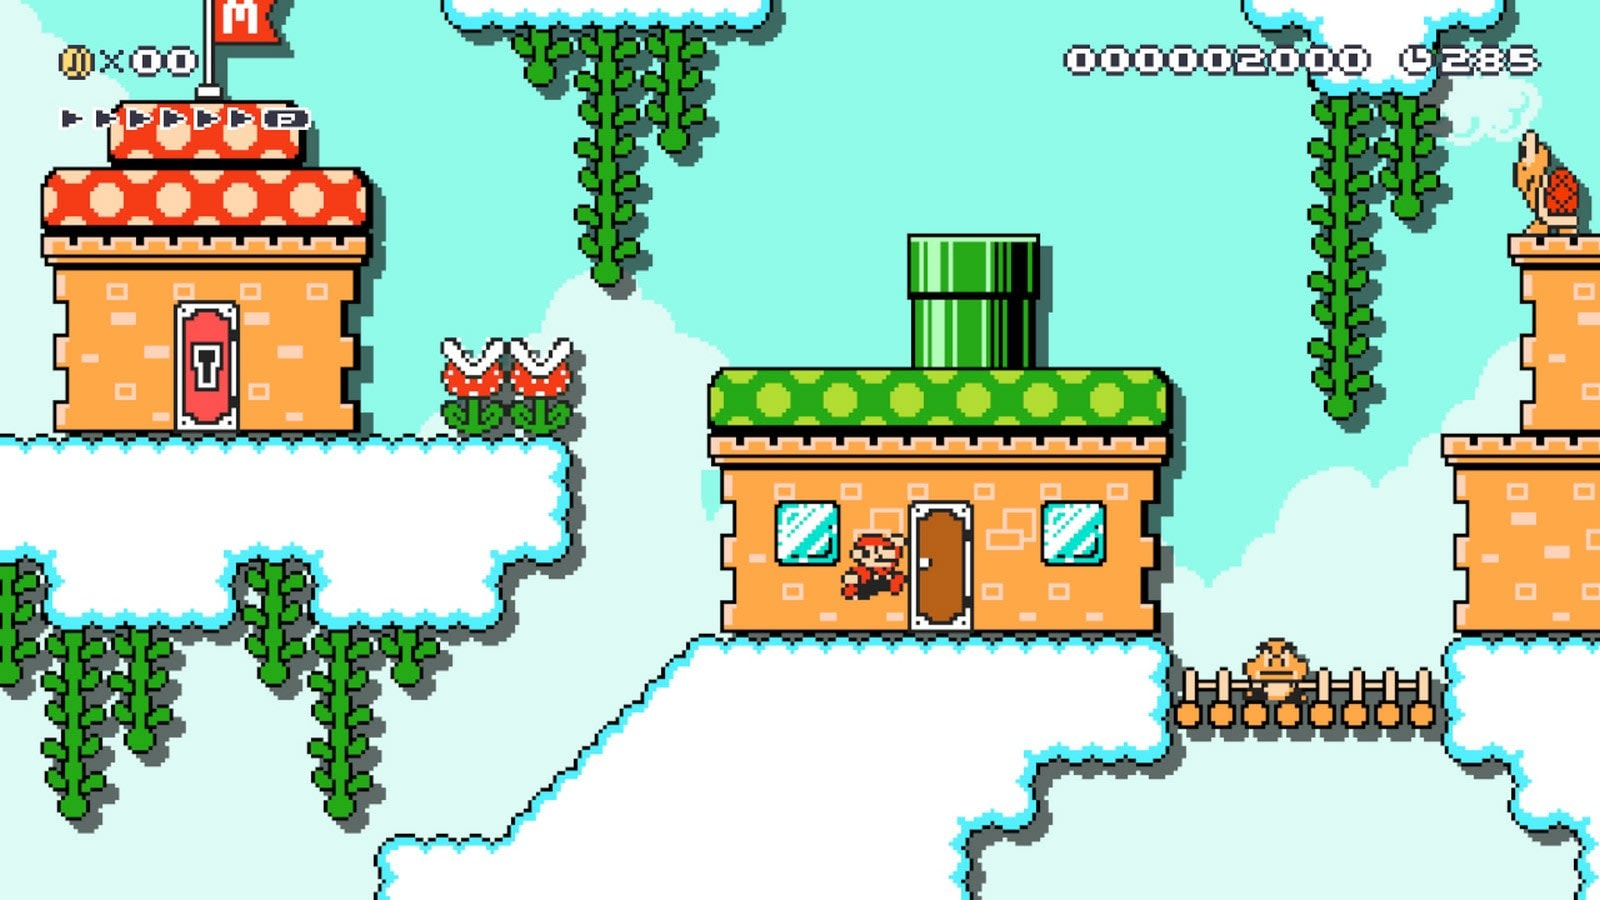 Super Mario Maker 2' is another love letter to Nintendo's 2D platformers